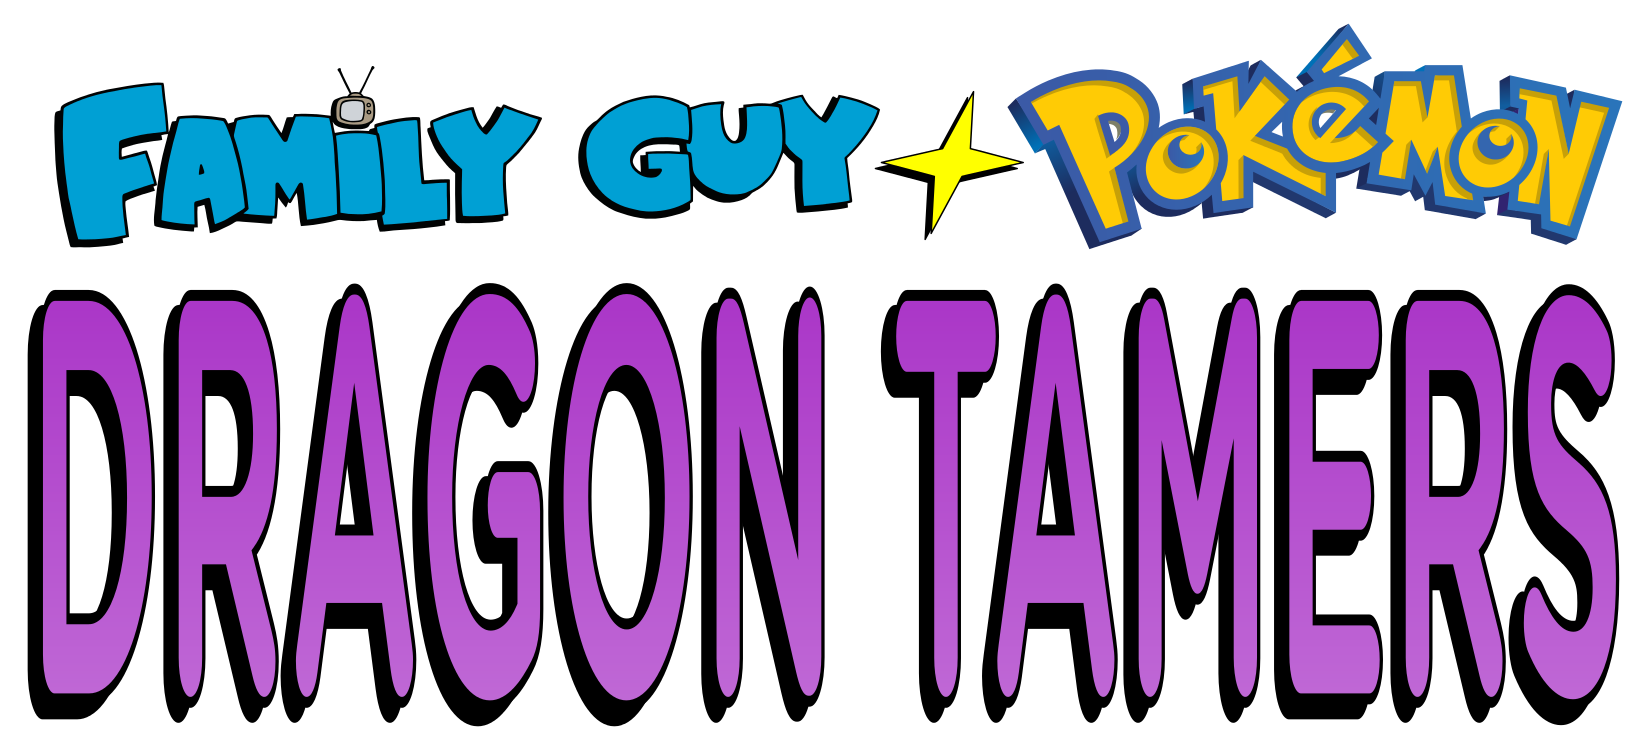 Family Guy + Pokémon: Dragon Tamers